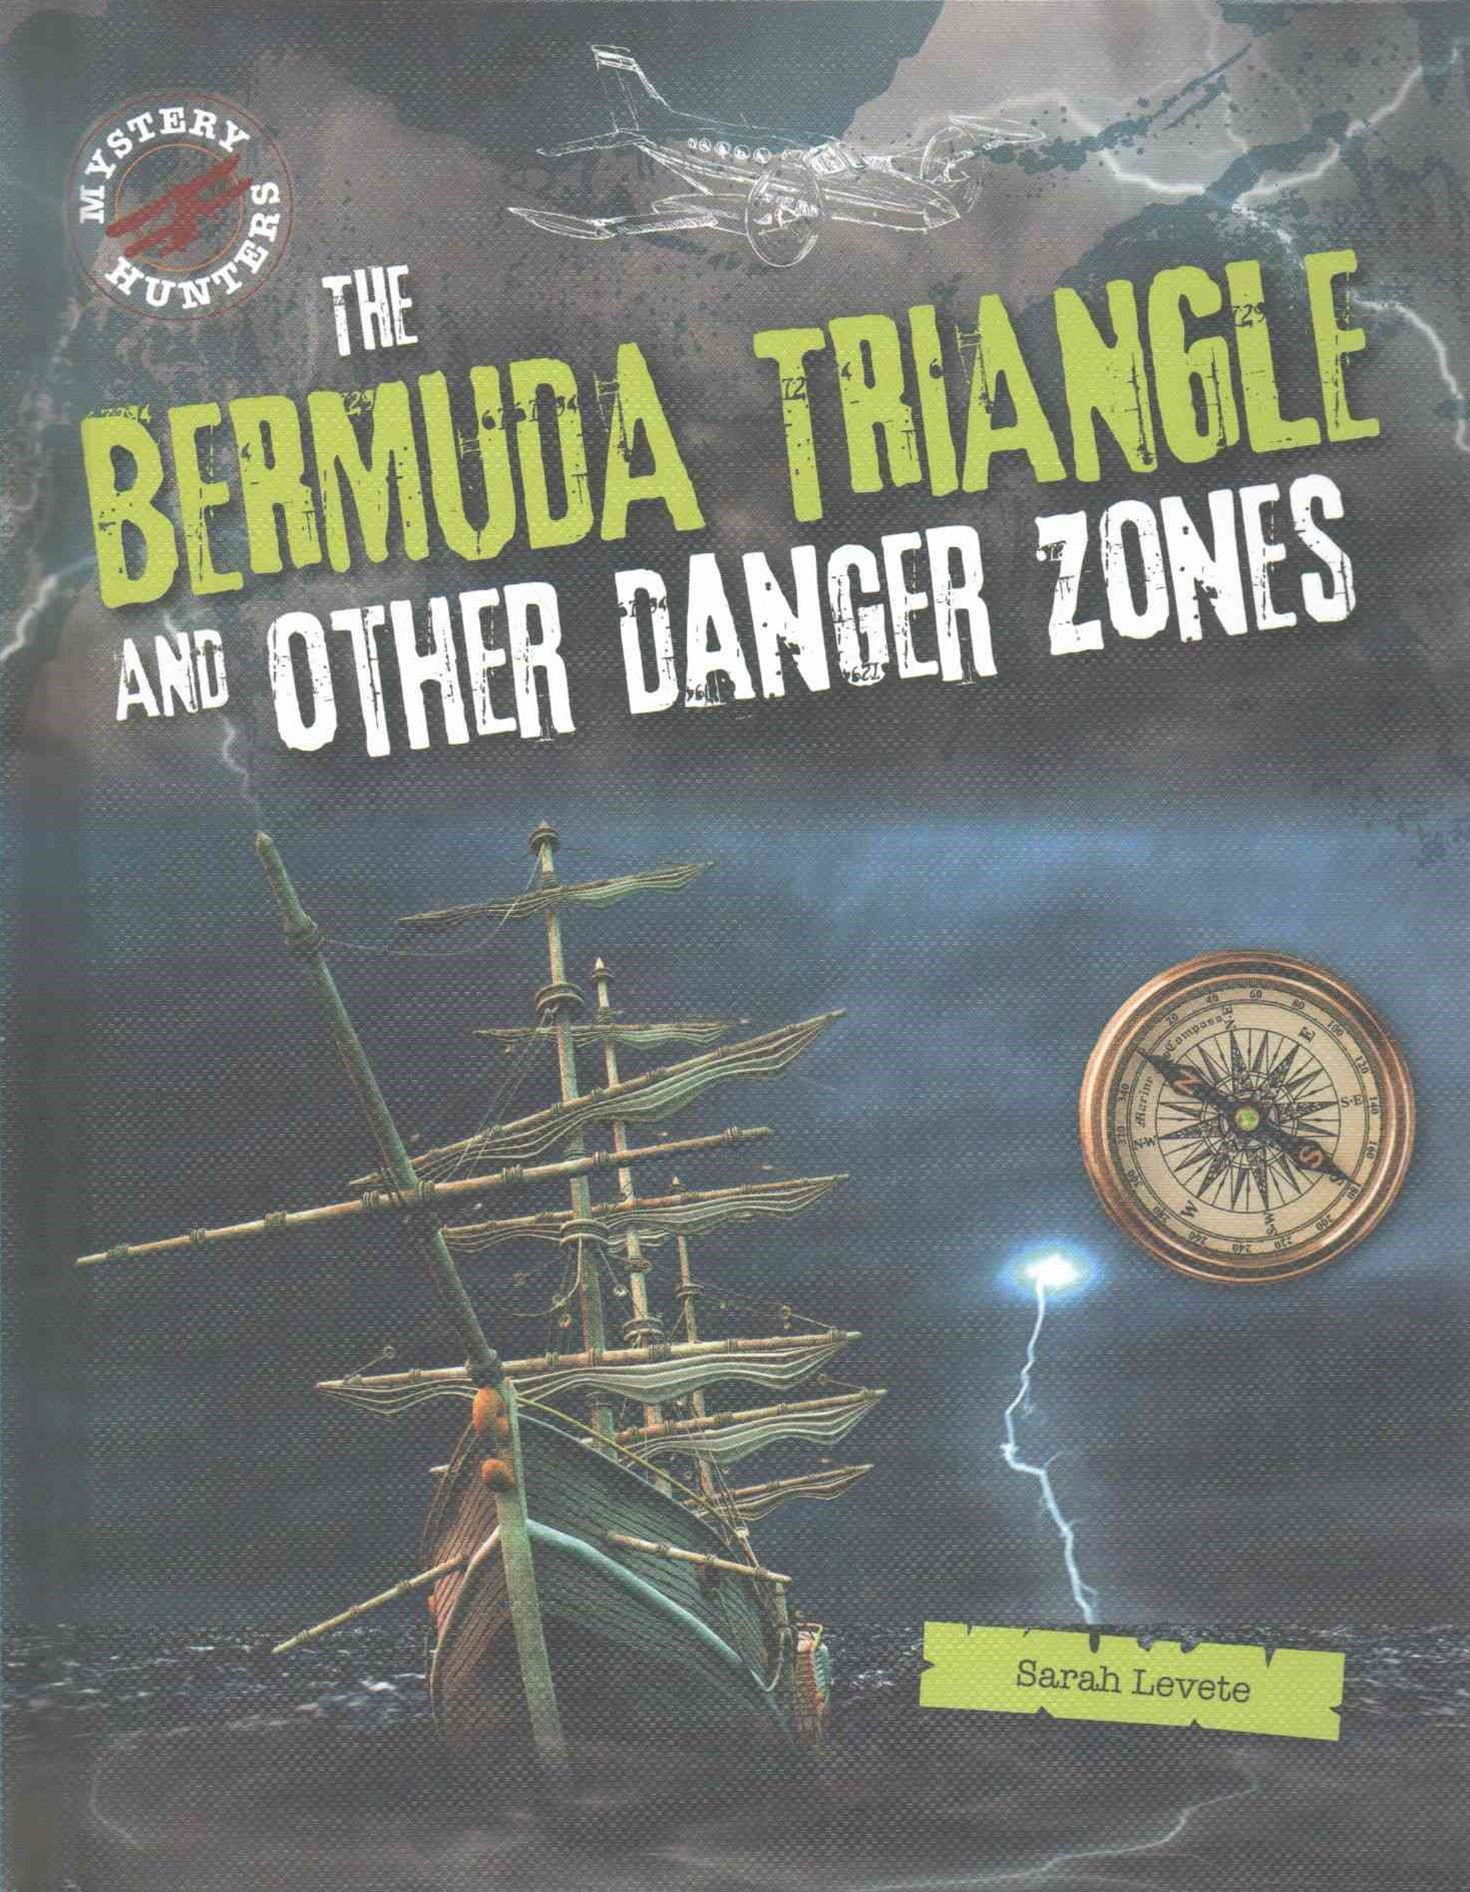 The Bermuda Triangle and Other Danger Zones